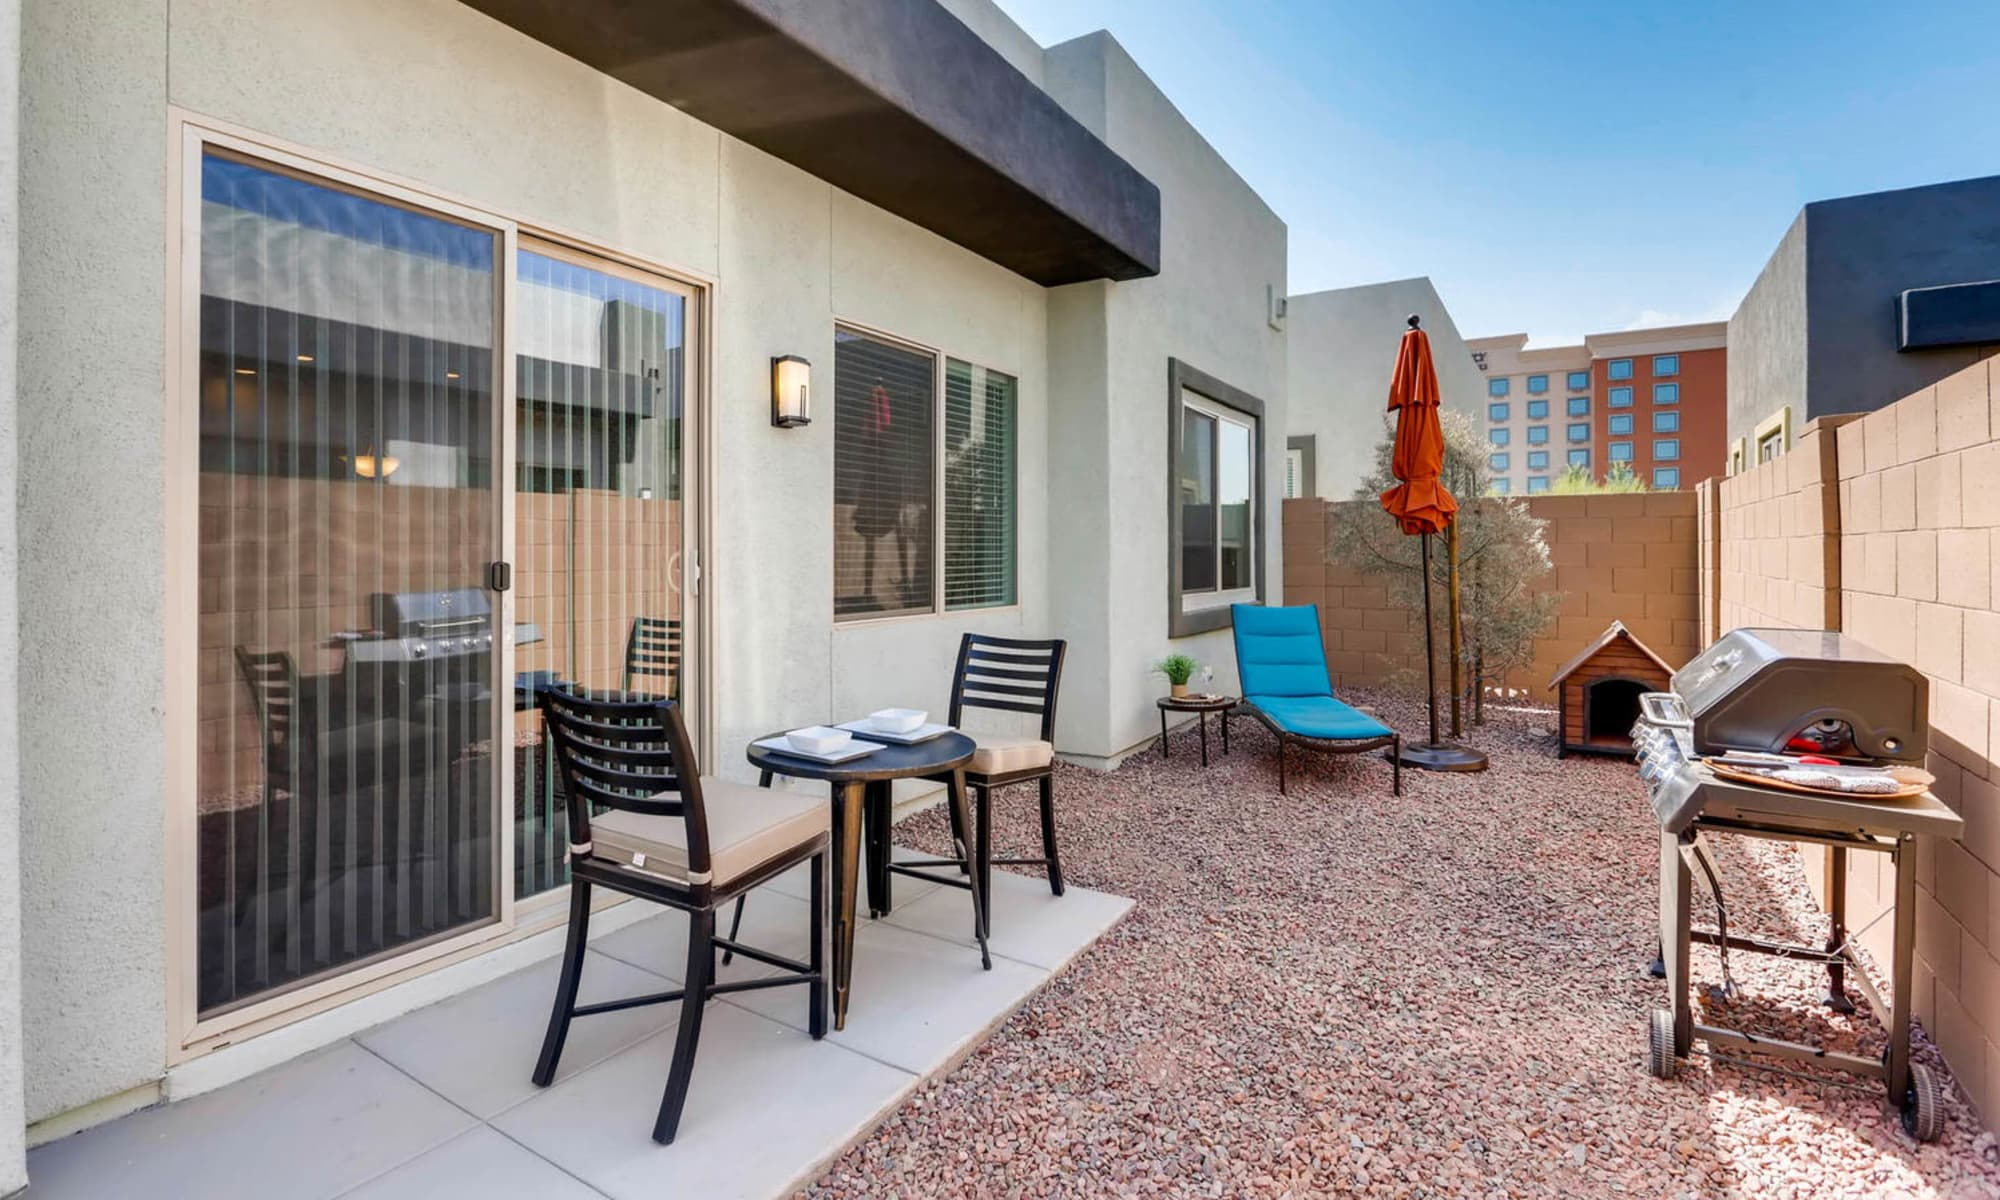 Avilla Deer Valley apartments in Phoenix, Arizona